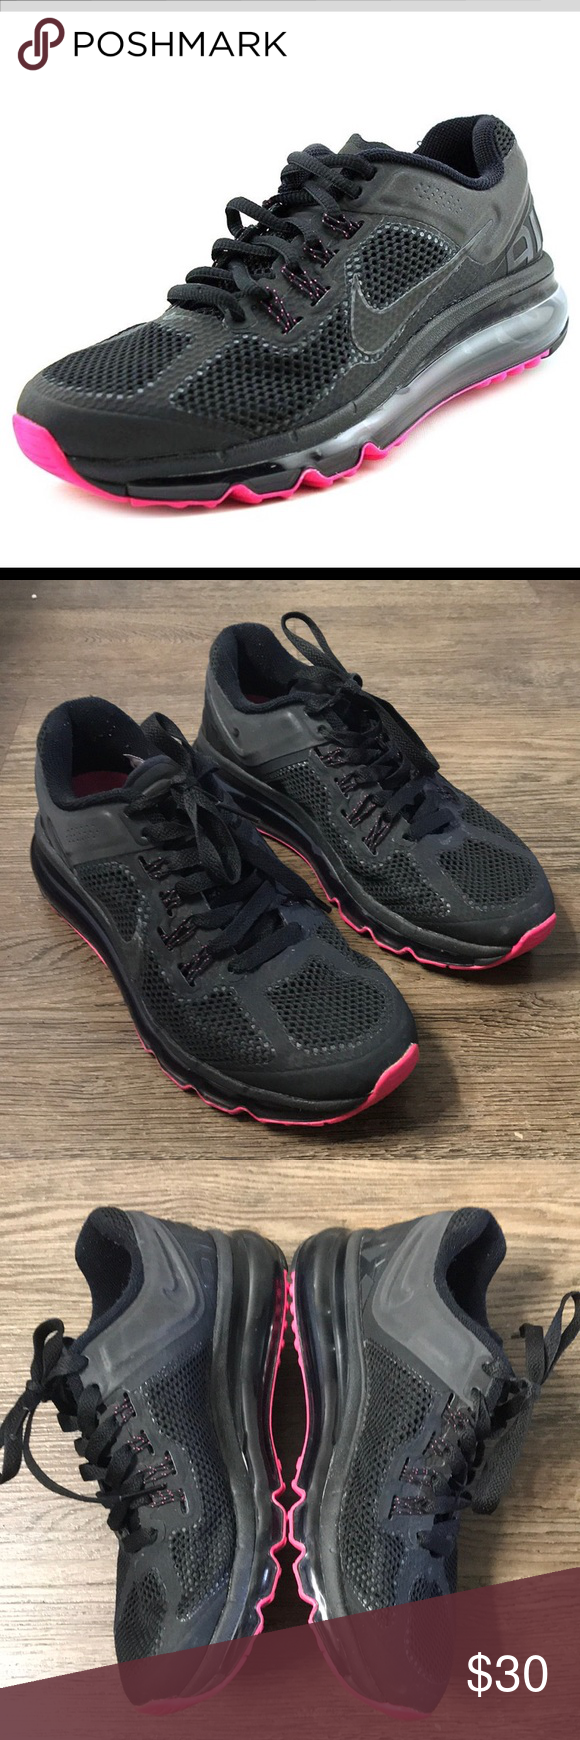 cheap for discount d6228 de590 Nike Air Max Waffle Skin 2013 Black Pink Size 6.5 Nike Women s Air Max  Waffle Skin Size 6.5 Color Black Pink Pre Owned. Good Condition. Nike Shoes  Sneakers